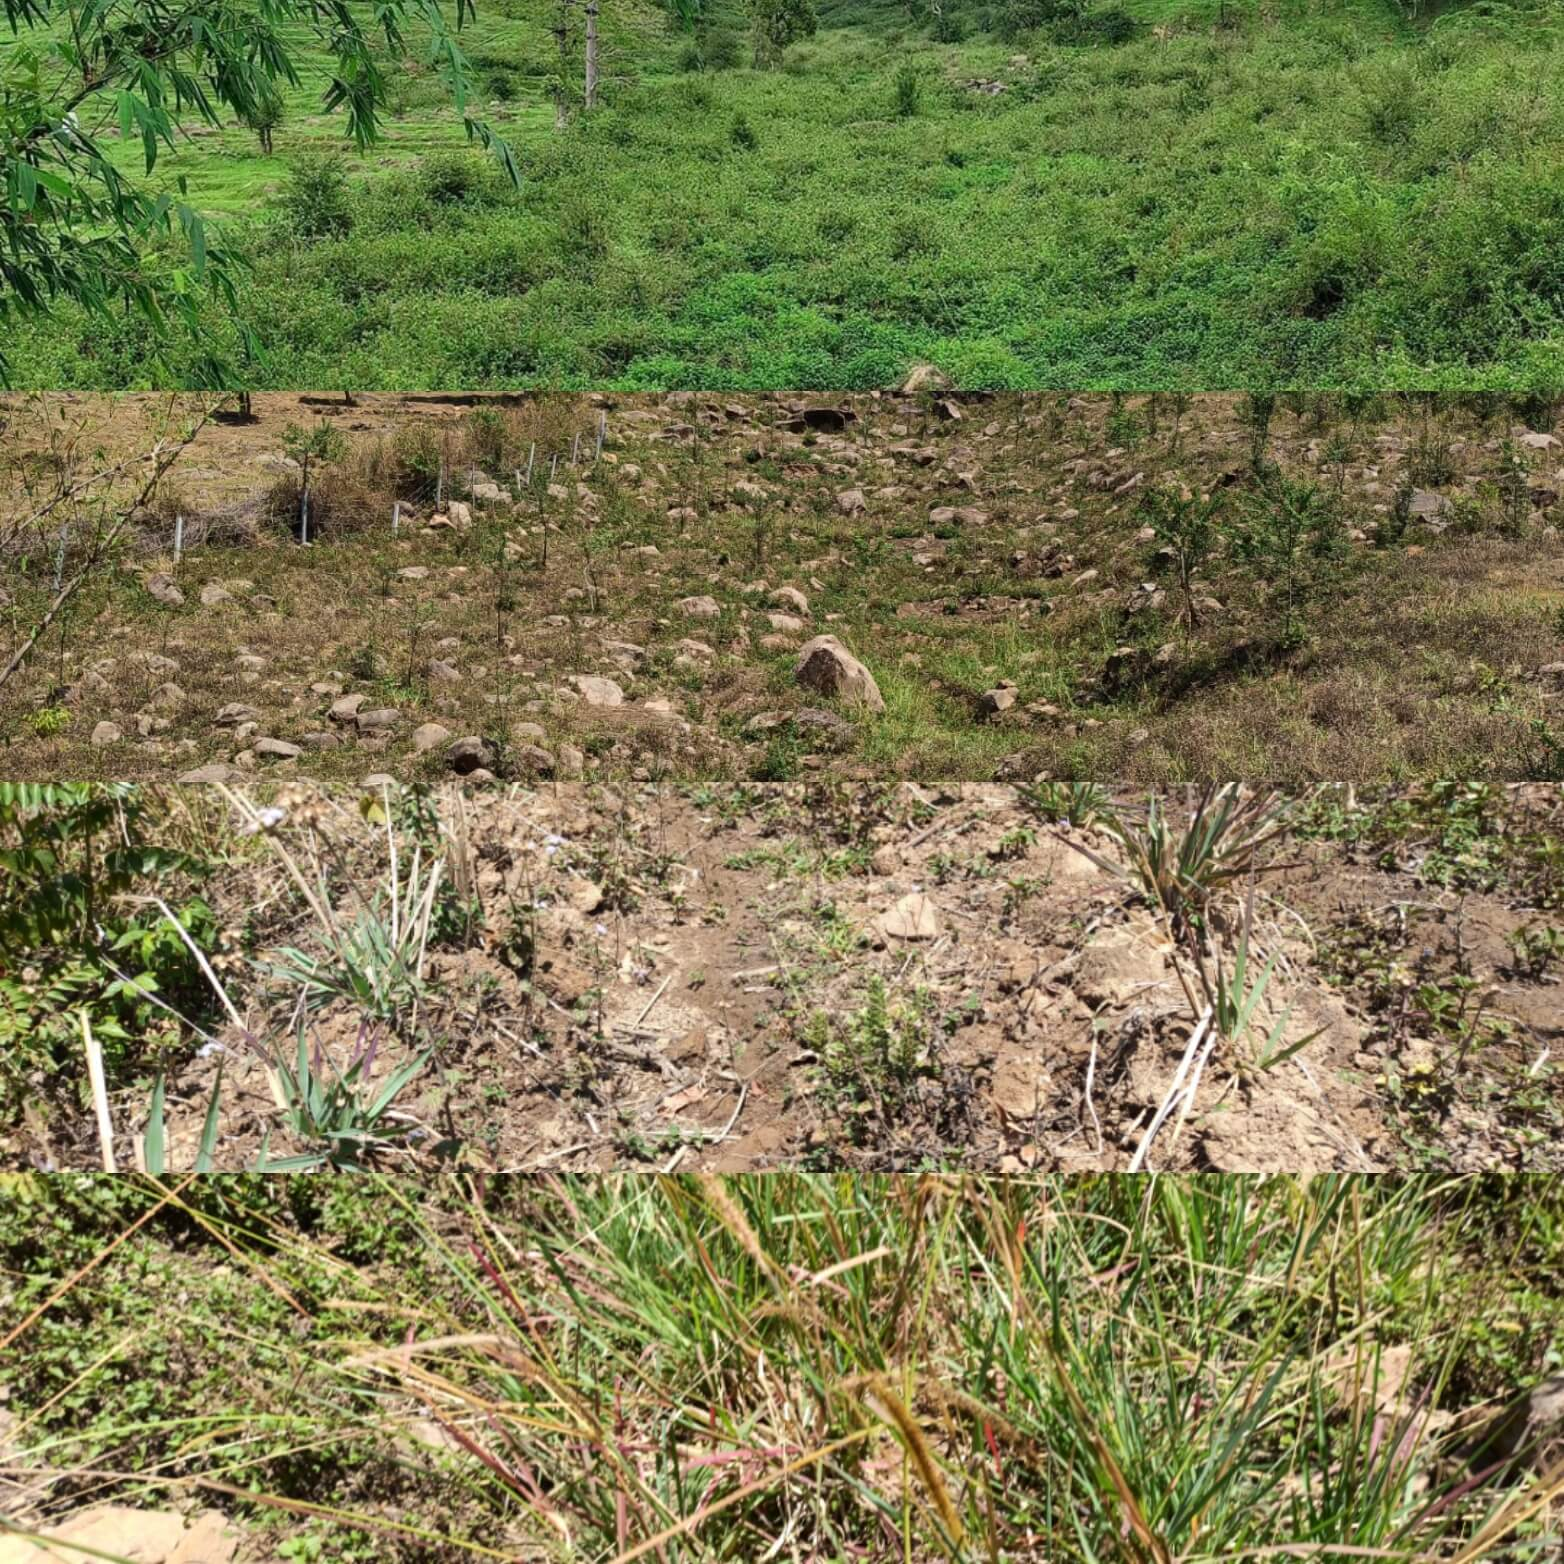 Weed infested area into community fodder bank